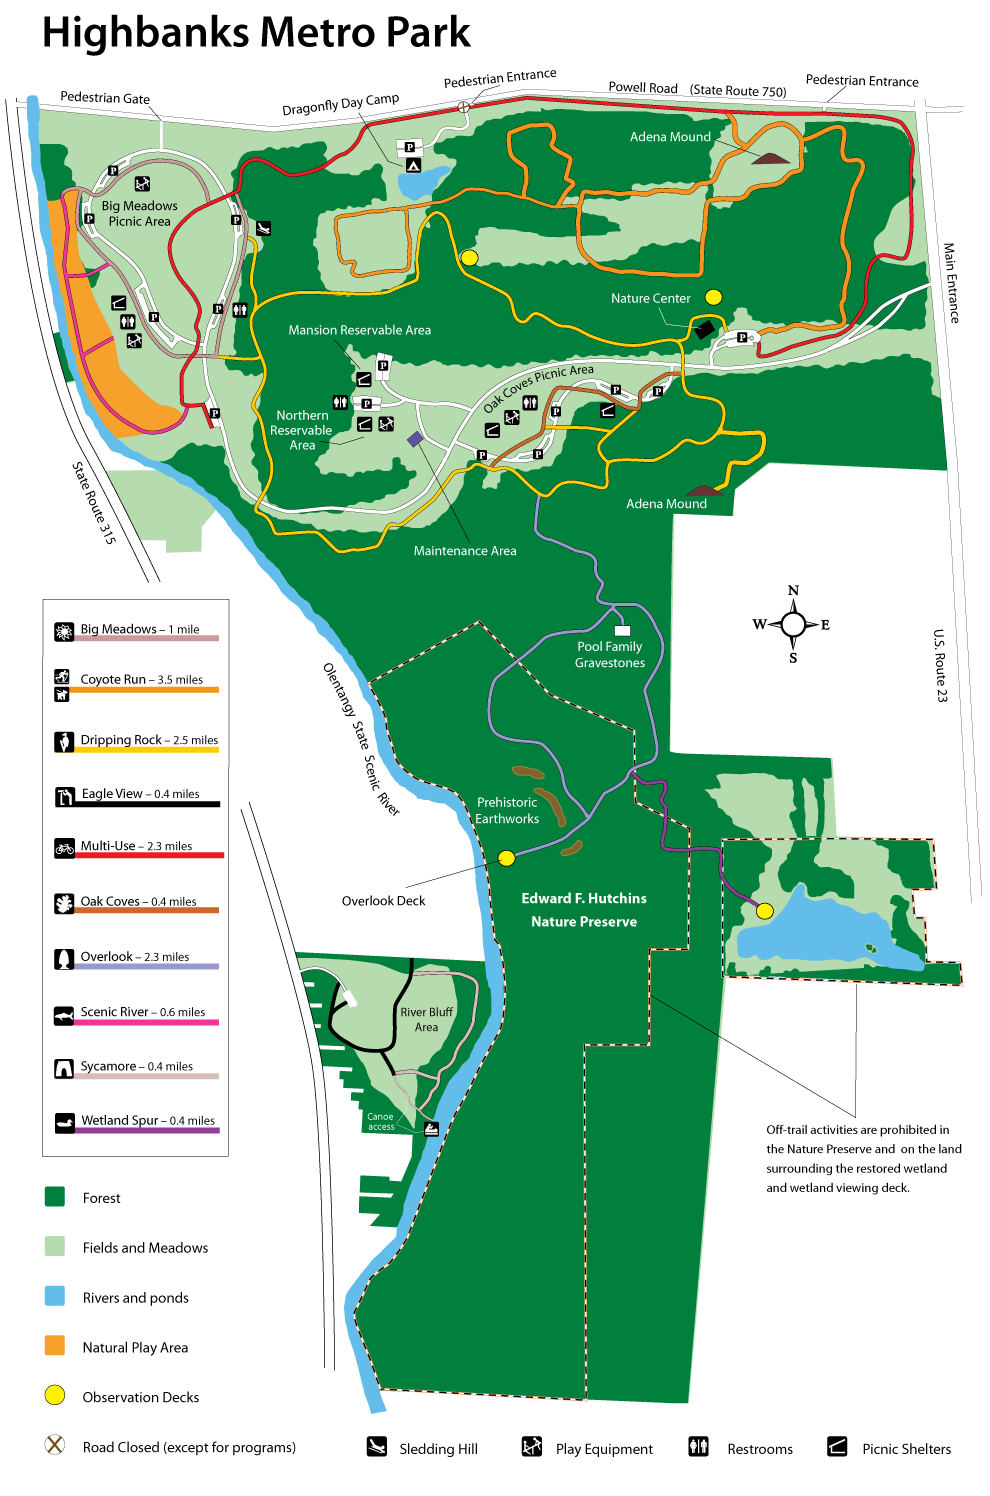 Highbanks Park Map - Metro Parks - Central Ohio Park System